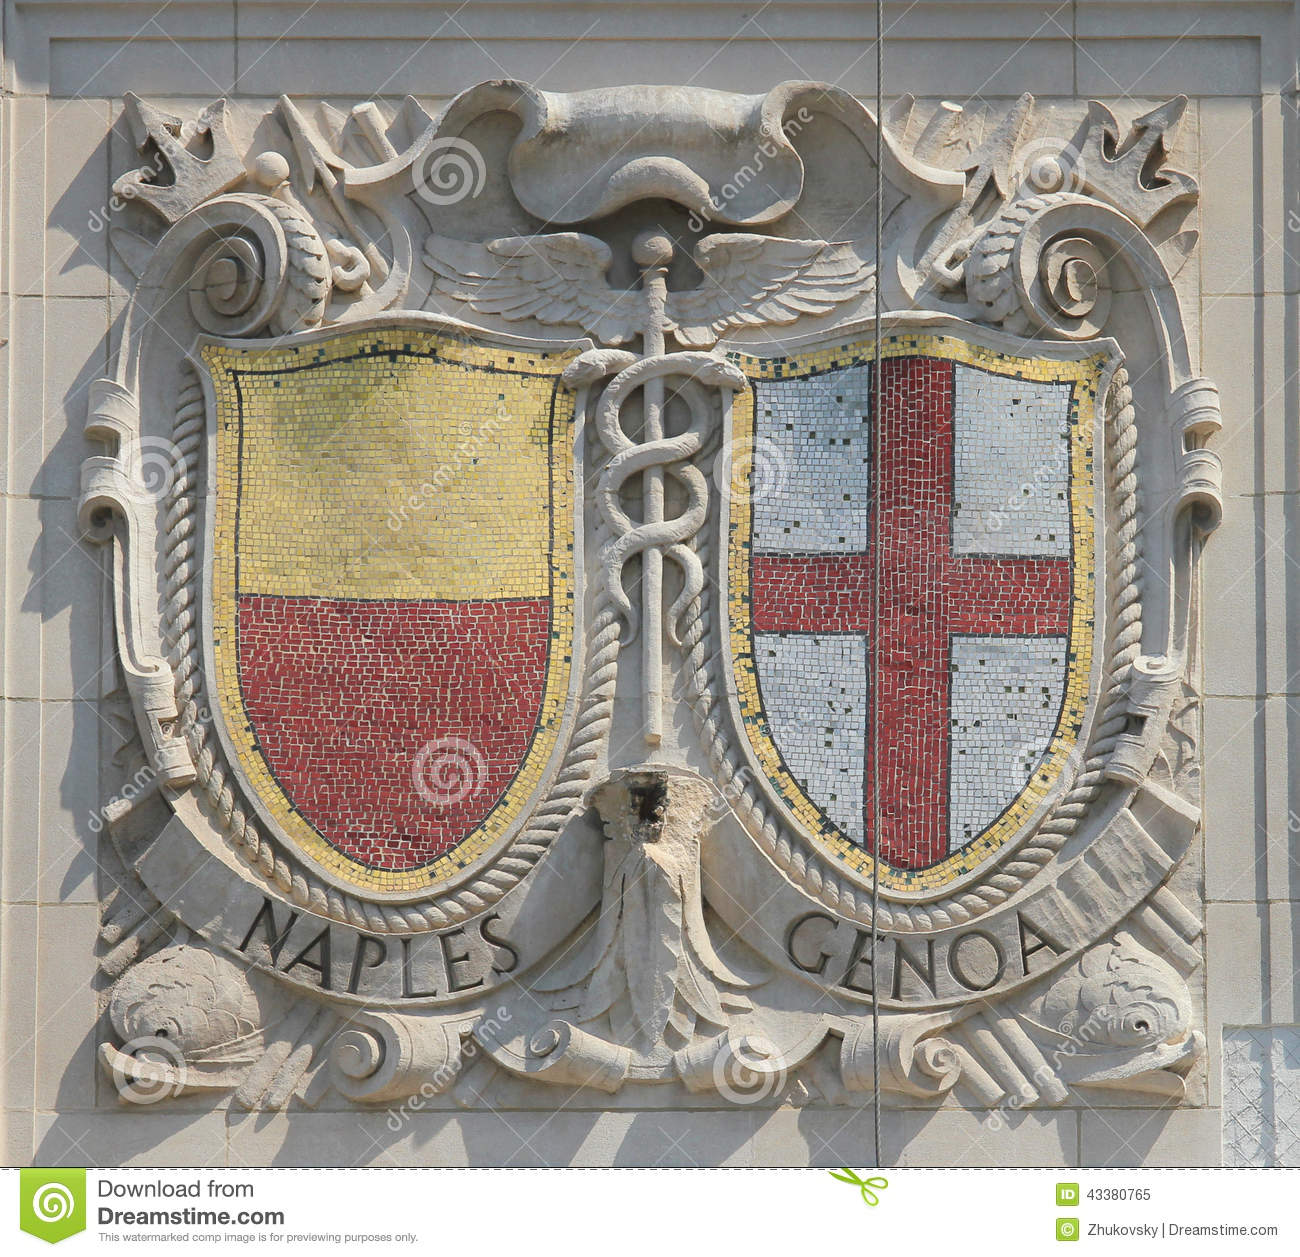 Mosaic shields of renowned port cities Naples and Genoa at the facade of United States Lines-Panama Pacific Lines Building